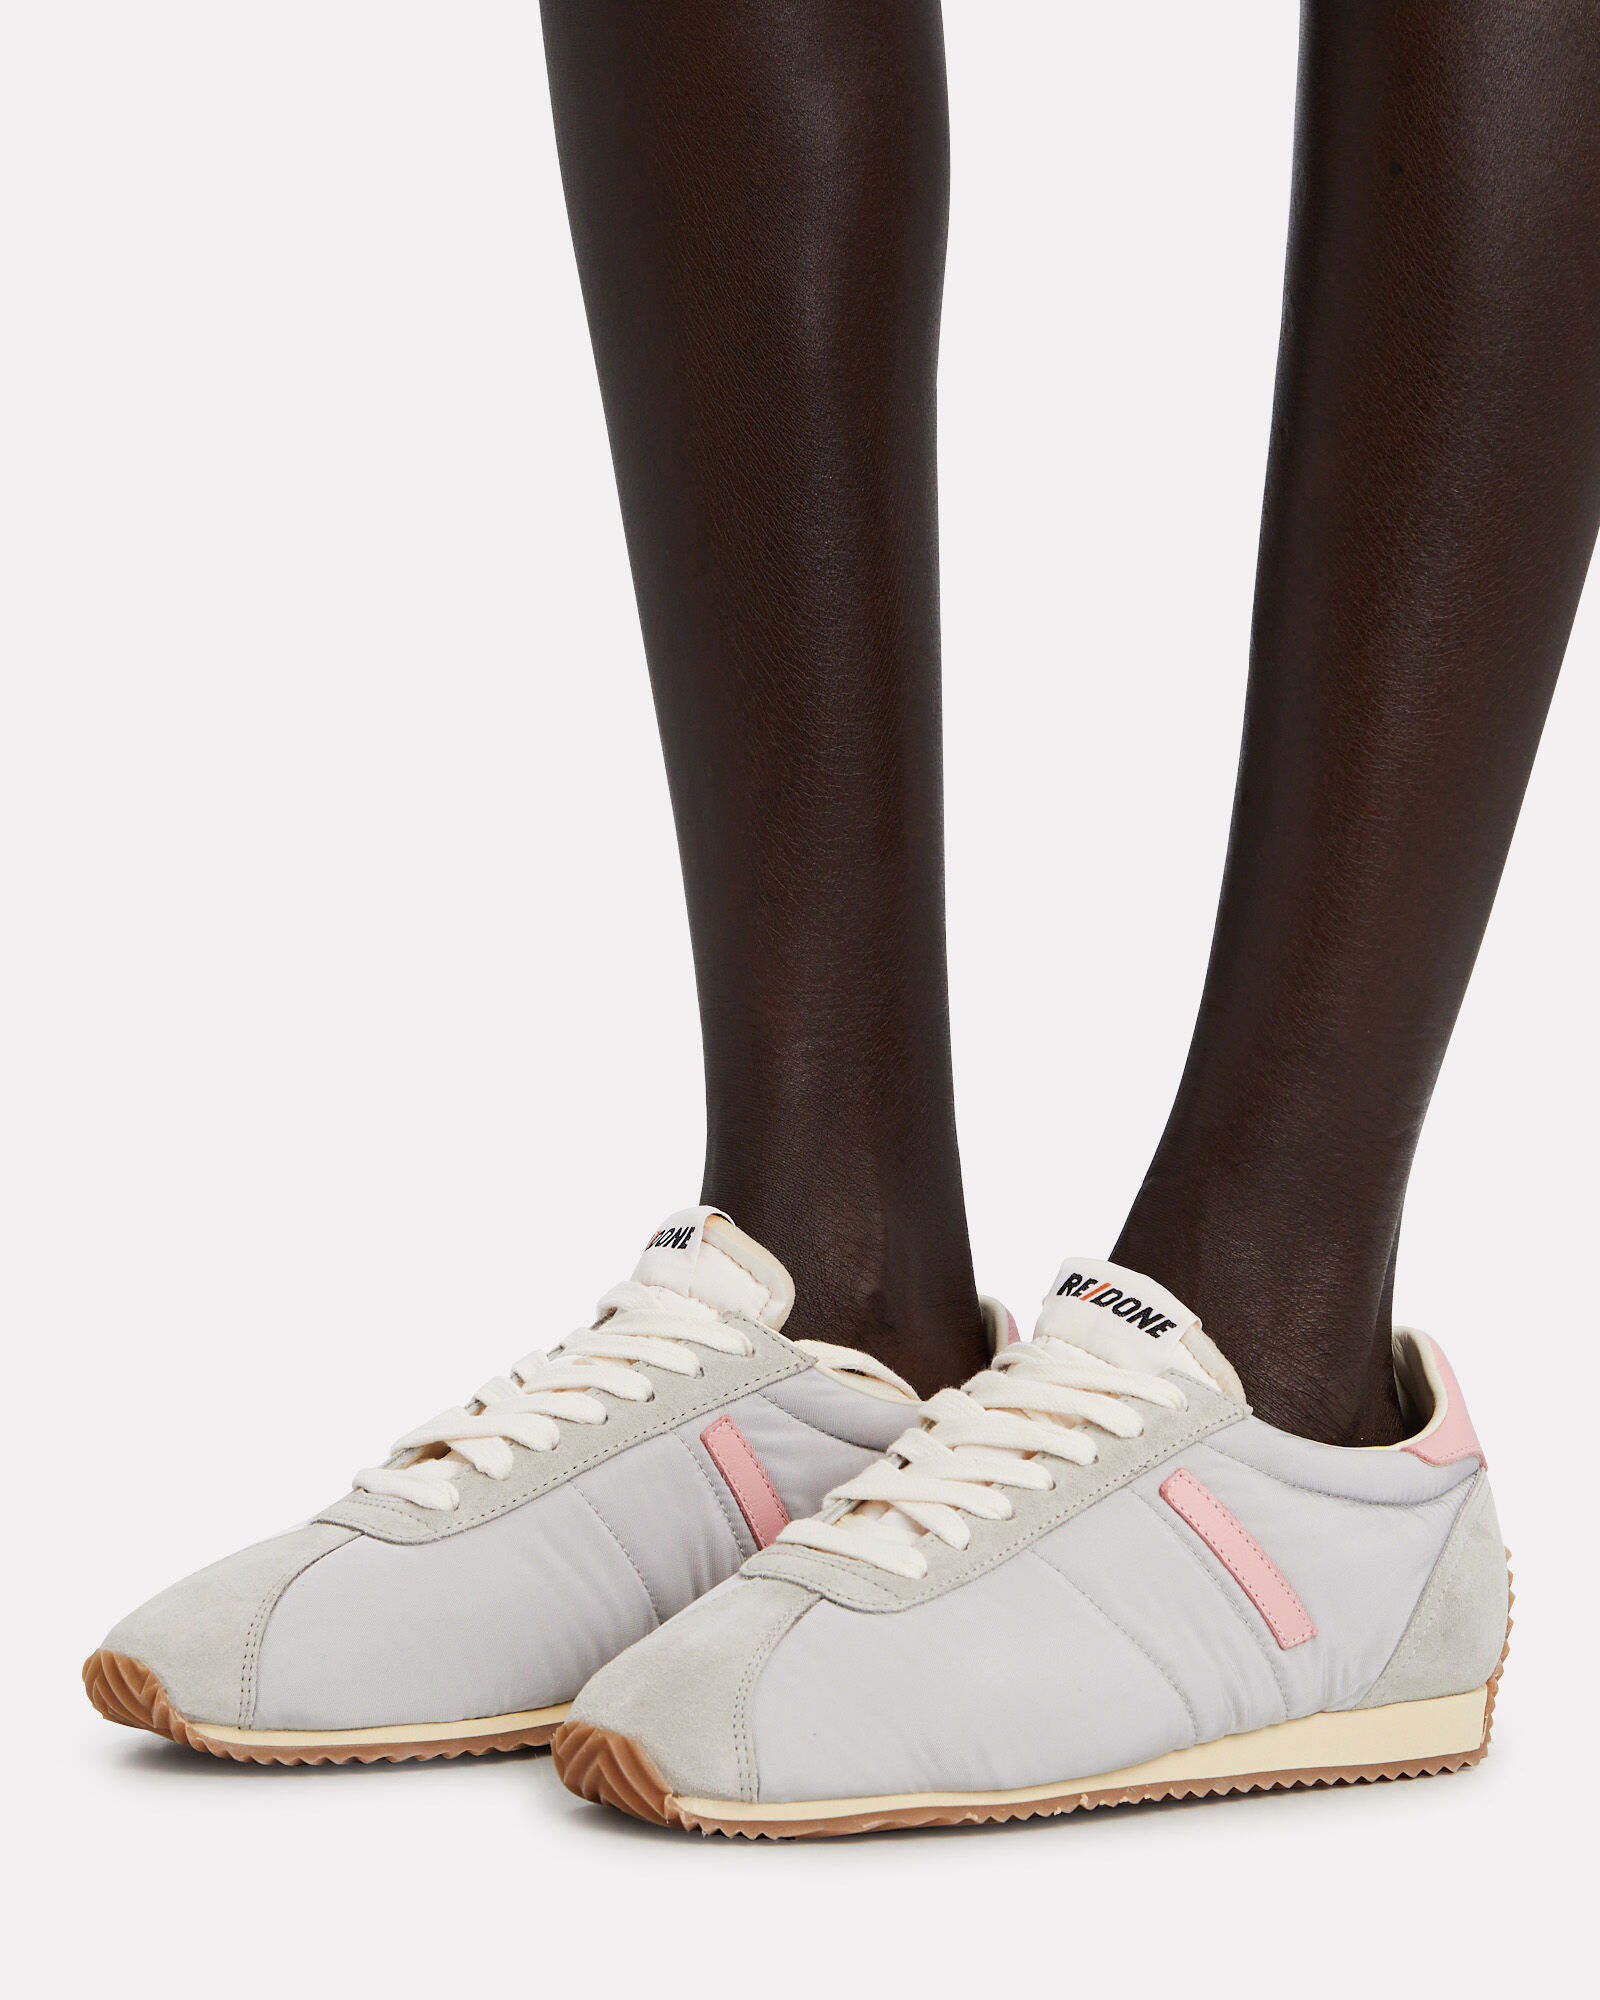 70s Leather Tennis Sneakers, LIGHT GREY/PINK, hi-res